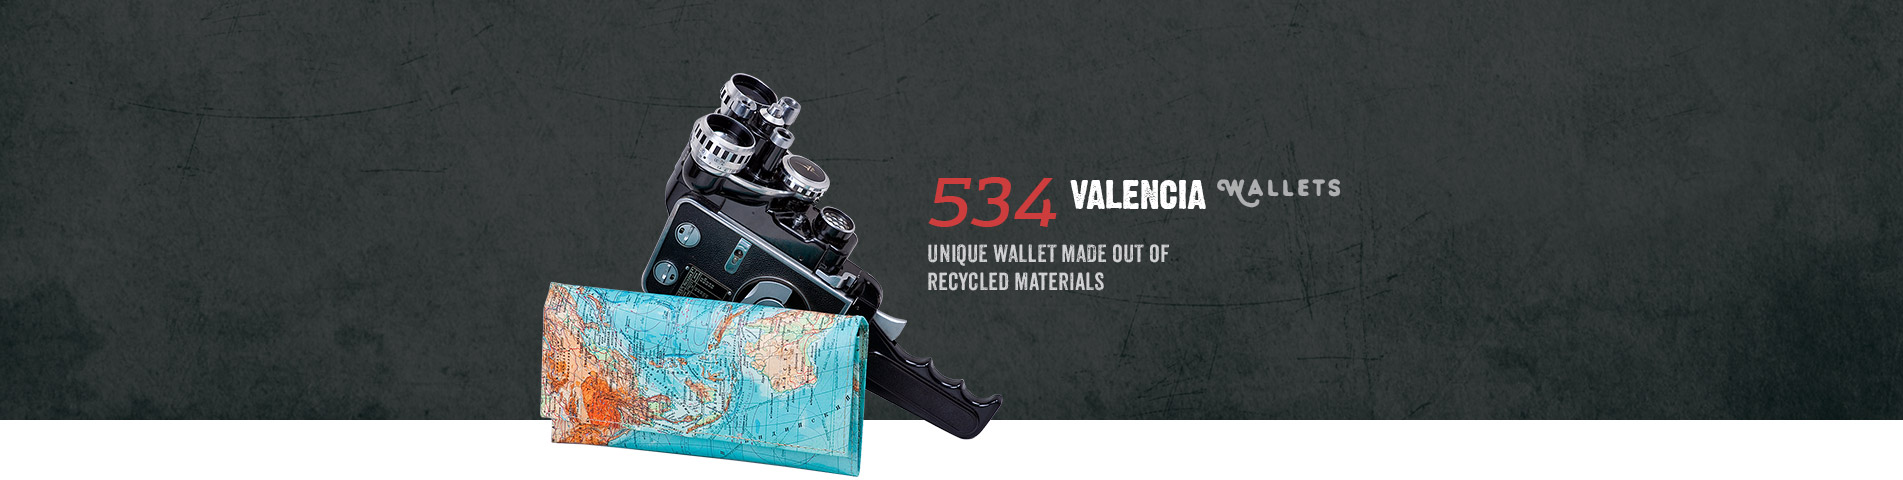 534 Valencia Wallets